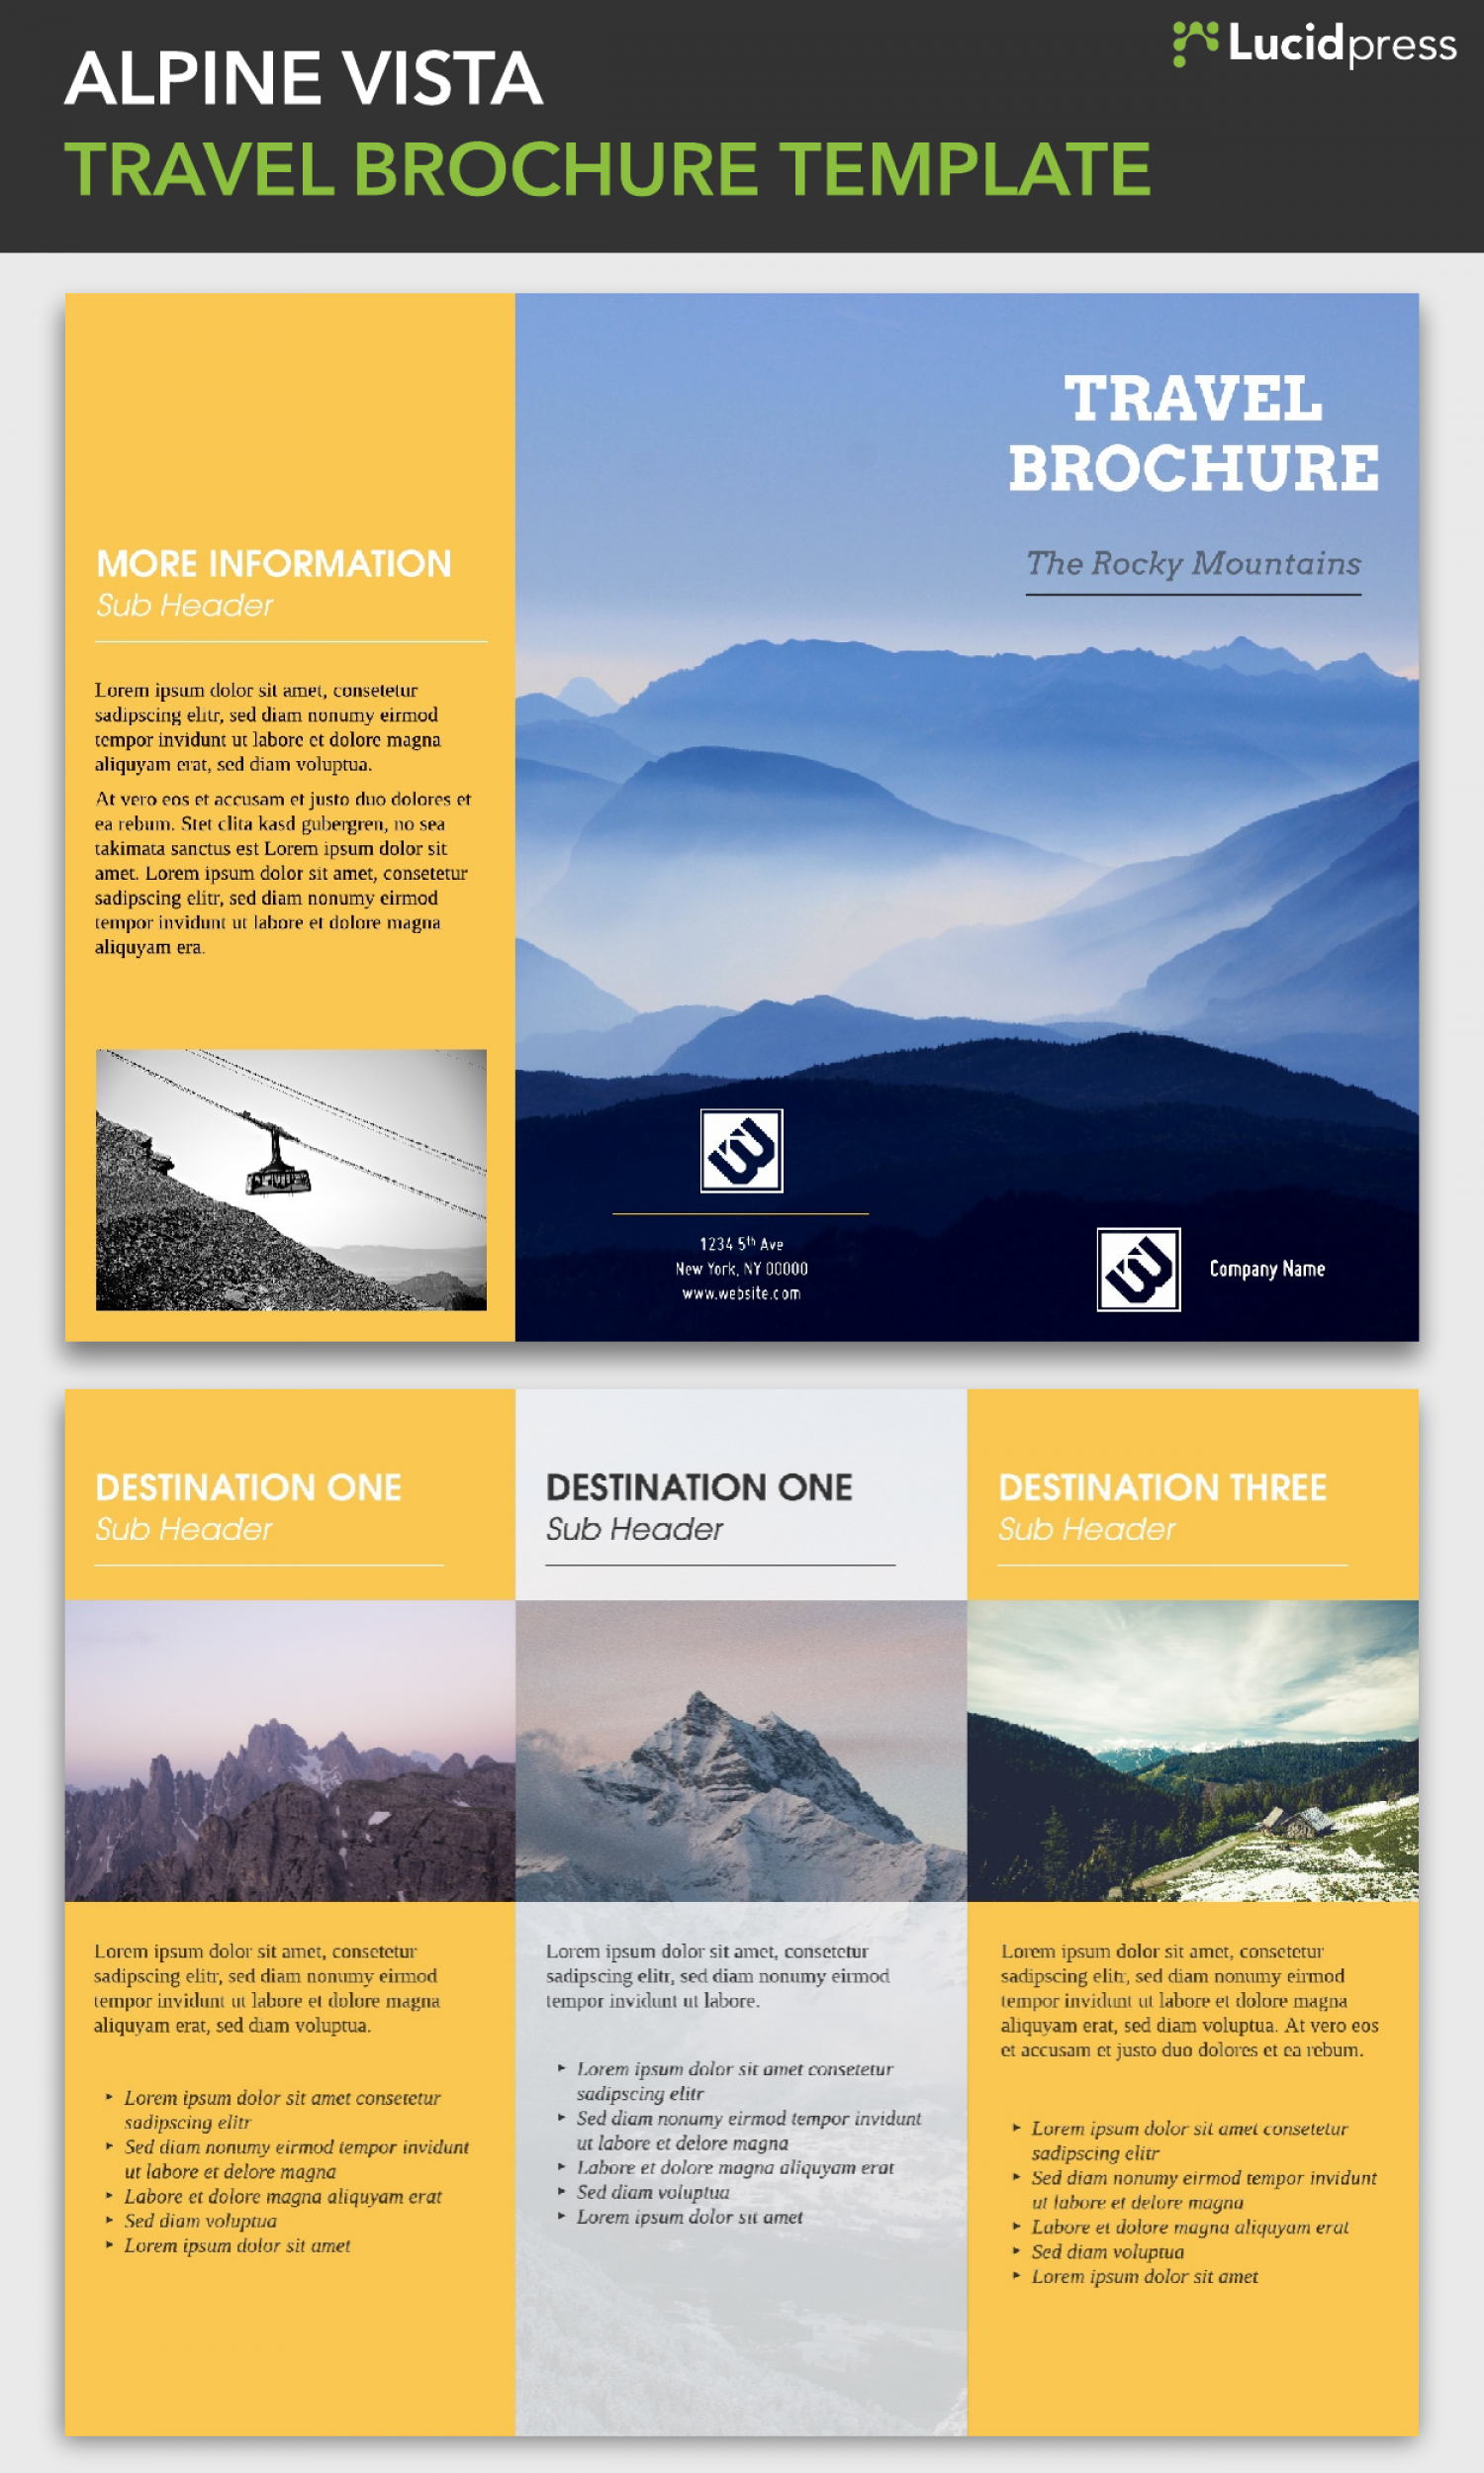 Travel Brochure Template Made In Lucidpress Visual